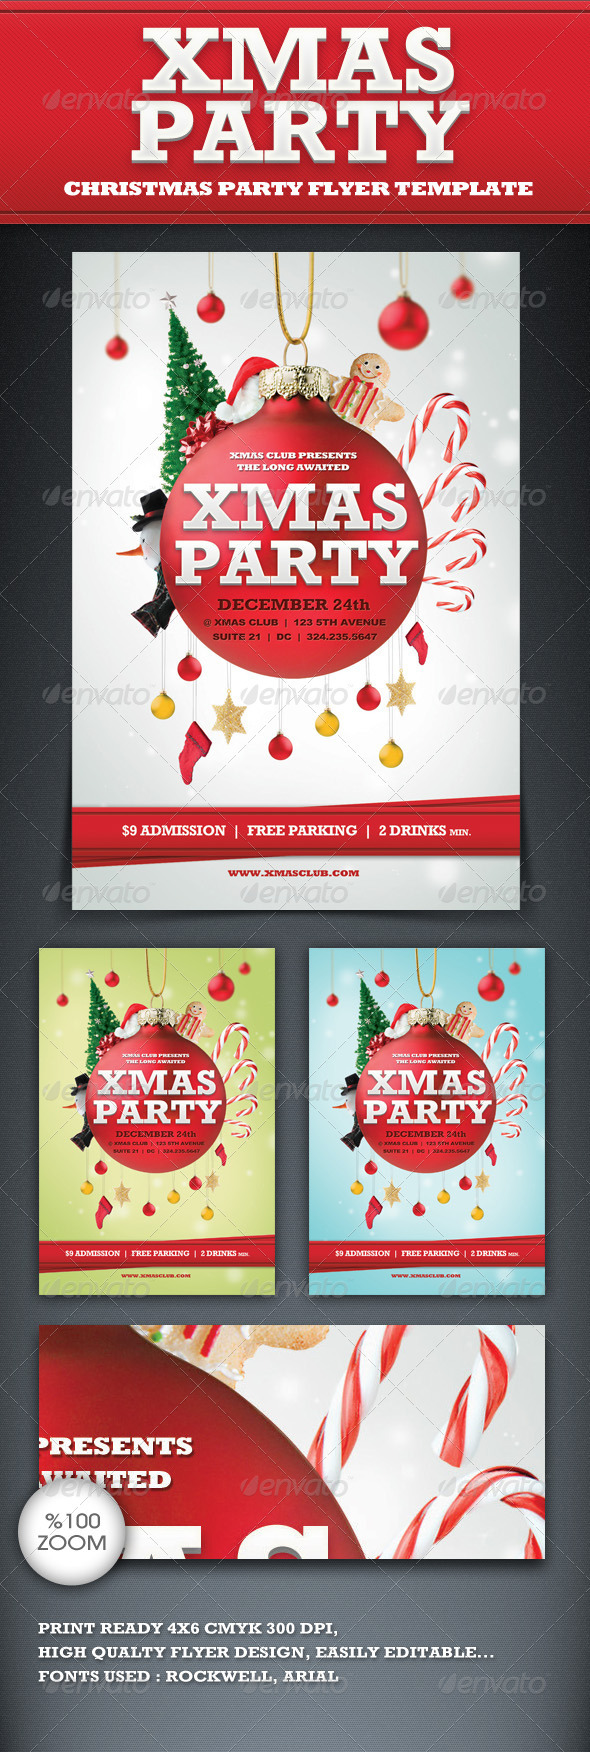 Xmas Party Flyer Template - Clubs & Parties Events